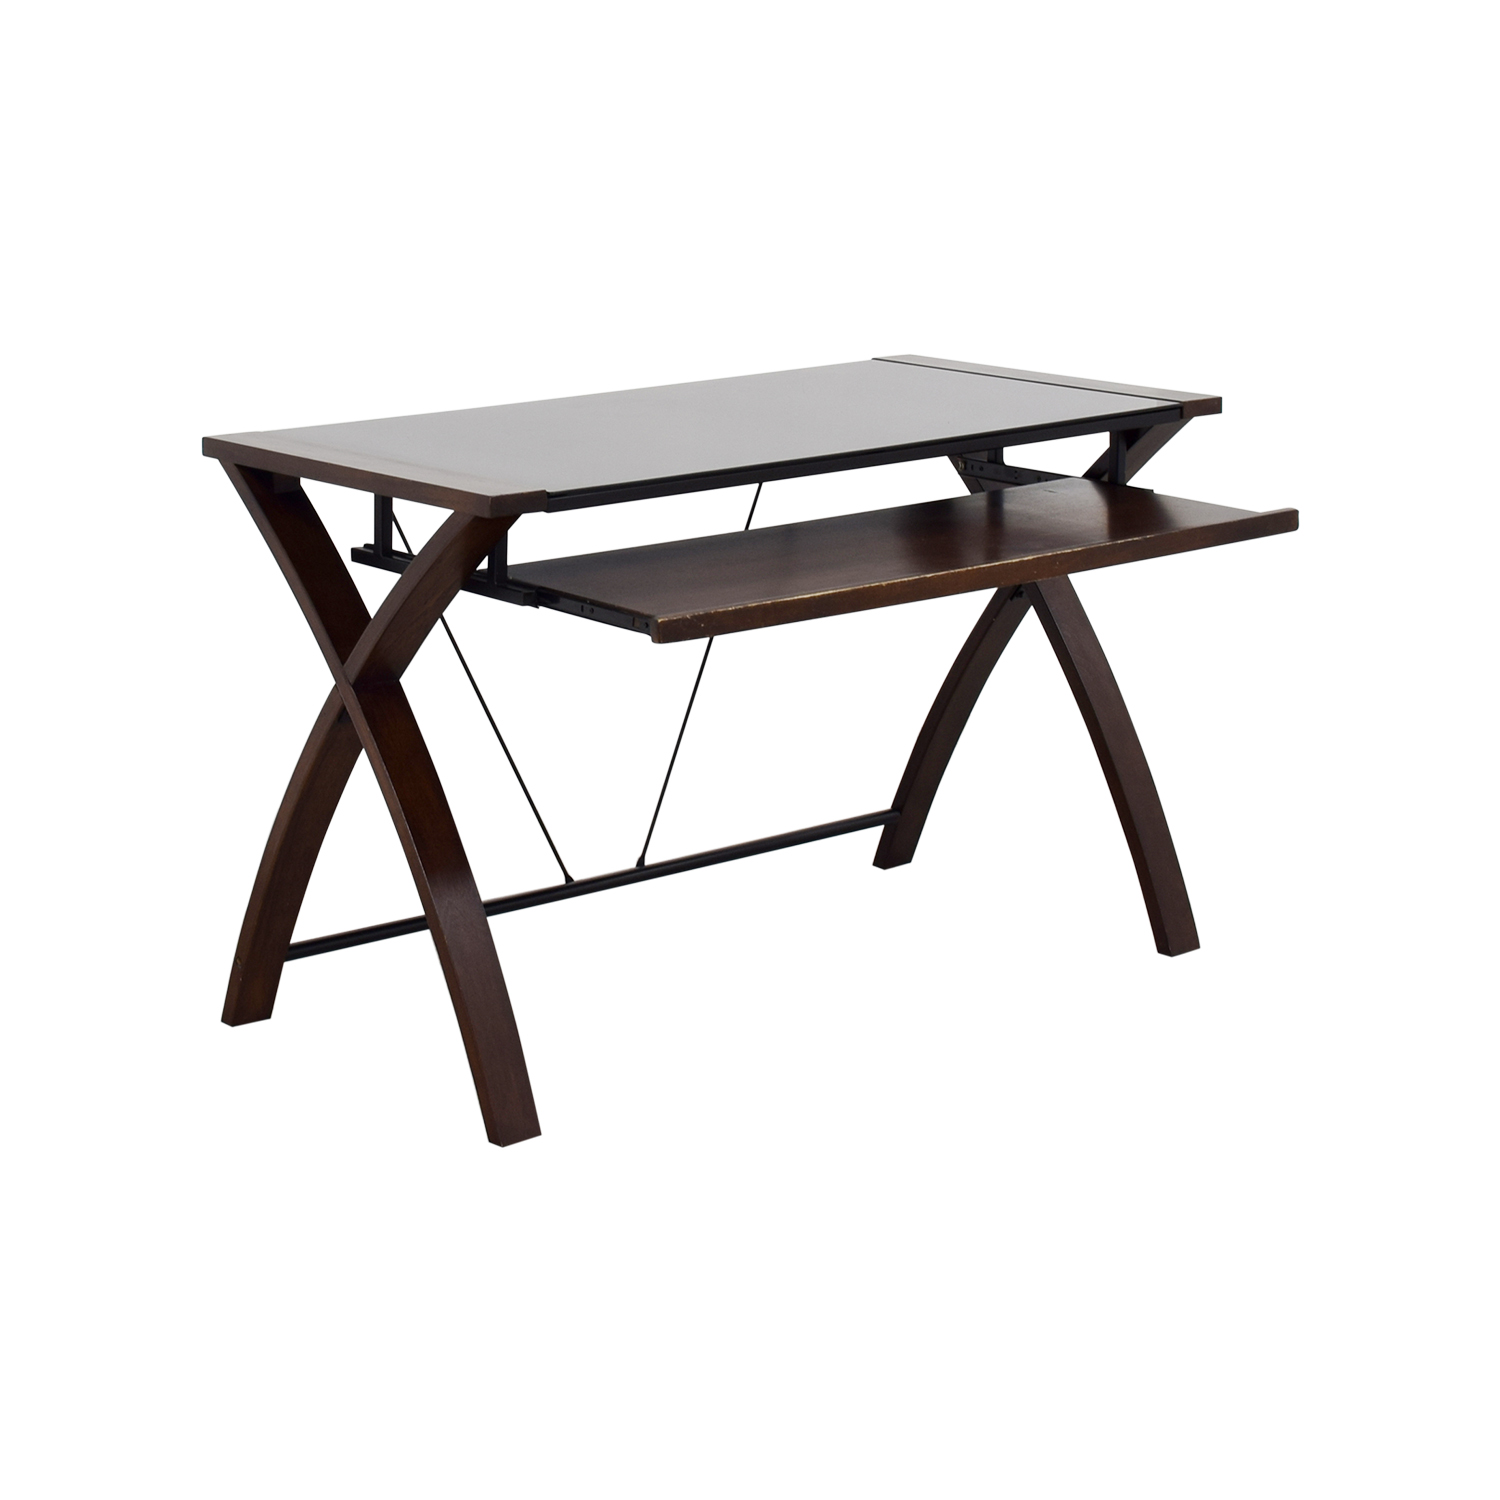 off computer shelf desk tables used coffee and end second hand girls futon toronto glass table wrought iron outdoor metal nesting modern square dining standing mirror console